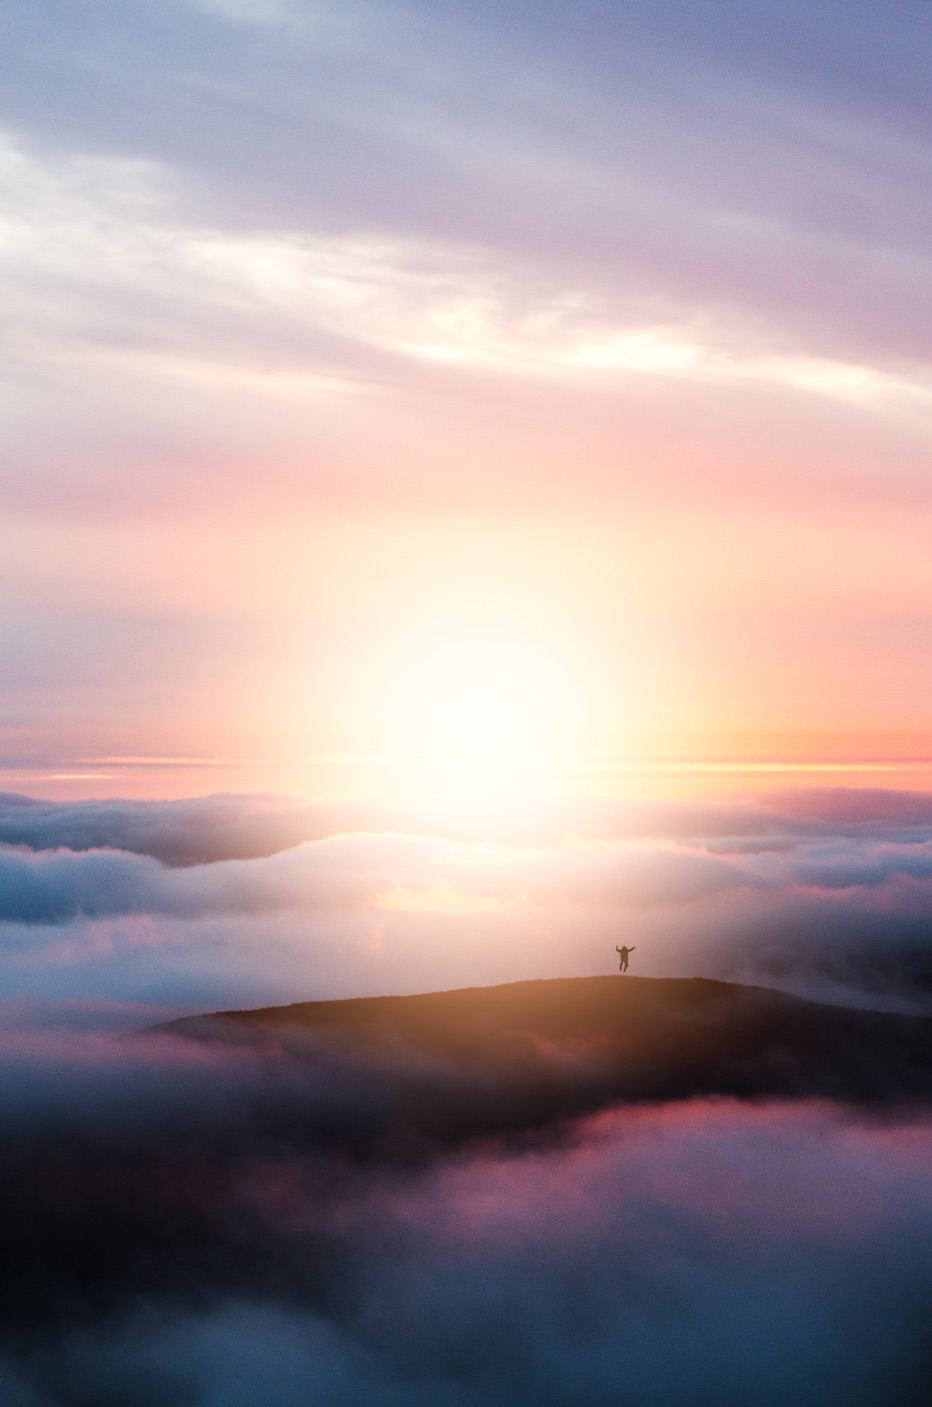 Cloud aesthetic wallpaper with sunrise